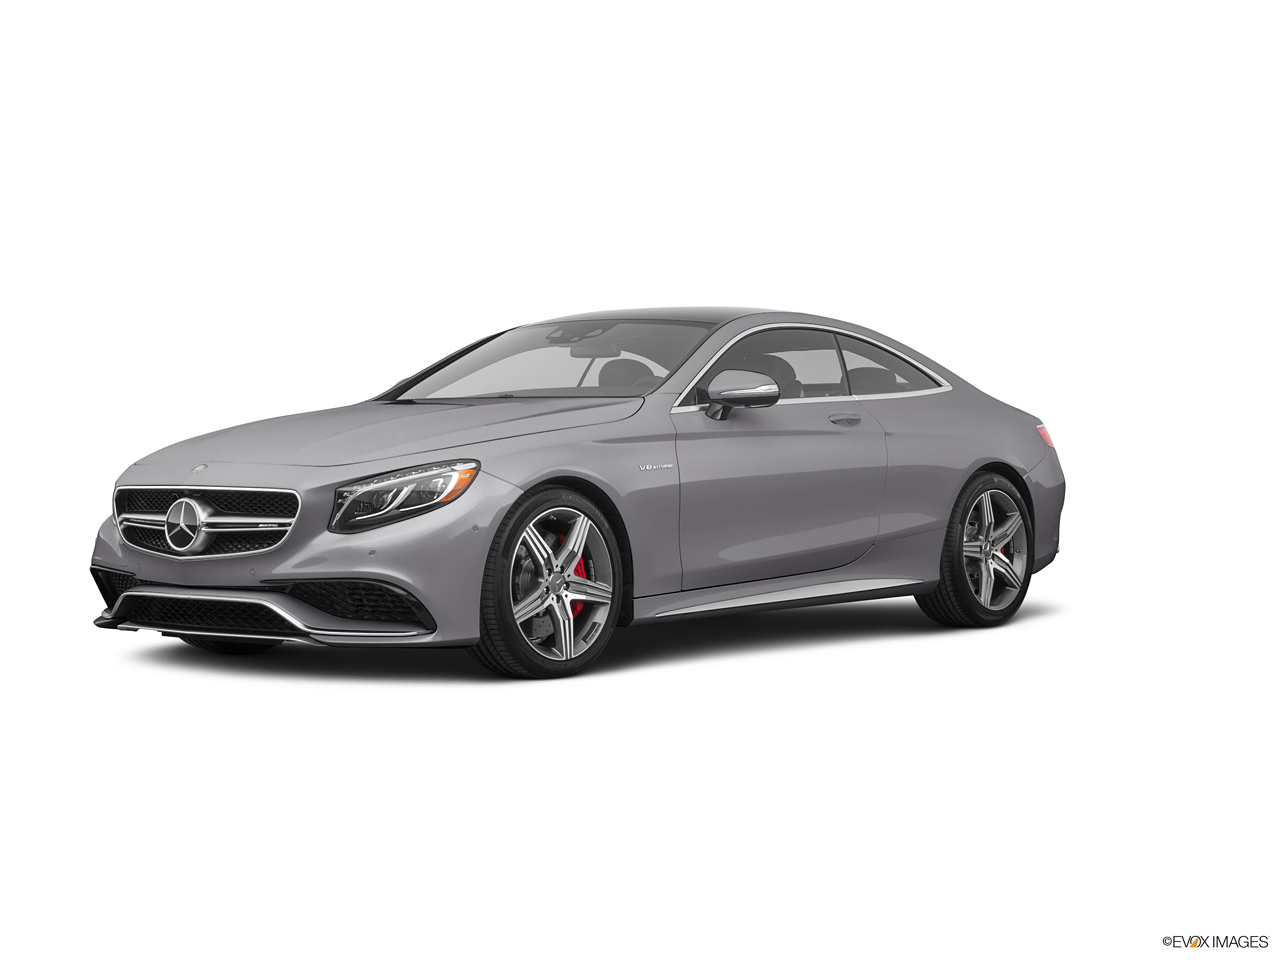 Car pictures list for mercedes benz s 63 amg coupe 2017 for Mercedes benz insurance